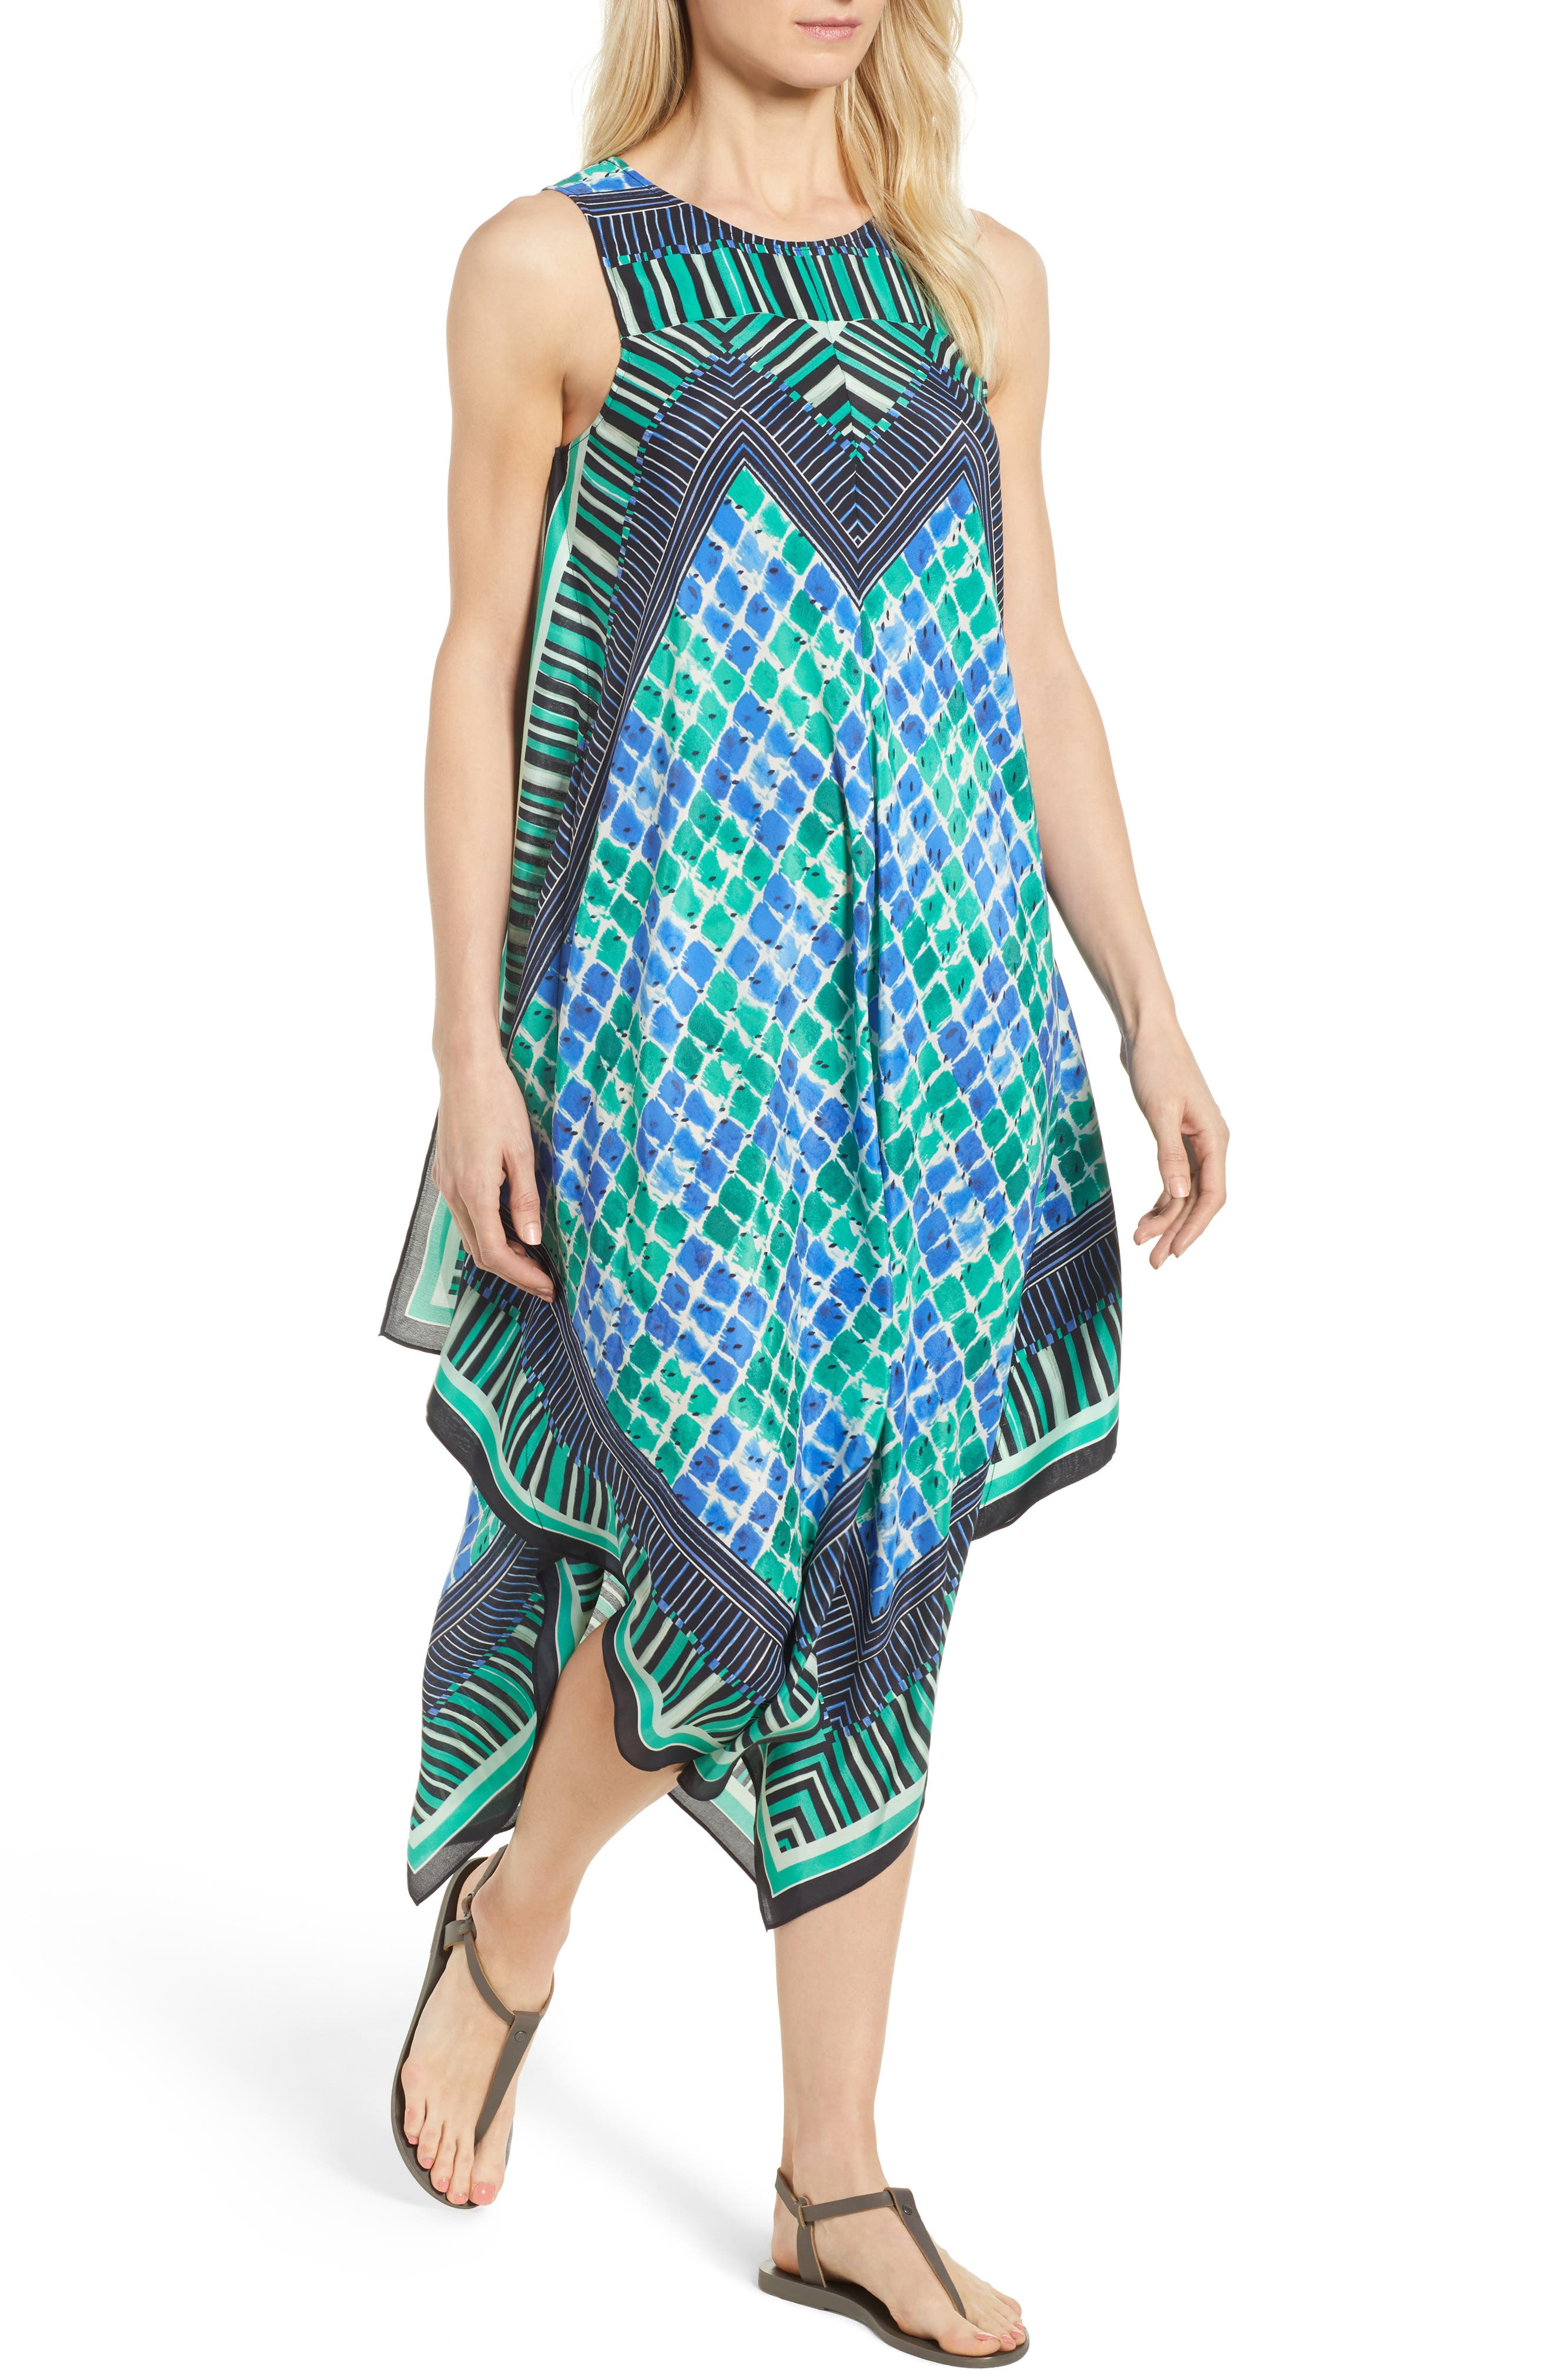 DJ VU Print Tank Dress,                             Main thumbnail 1, color,                             Multi